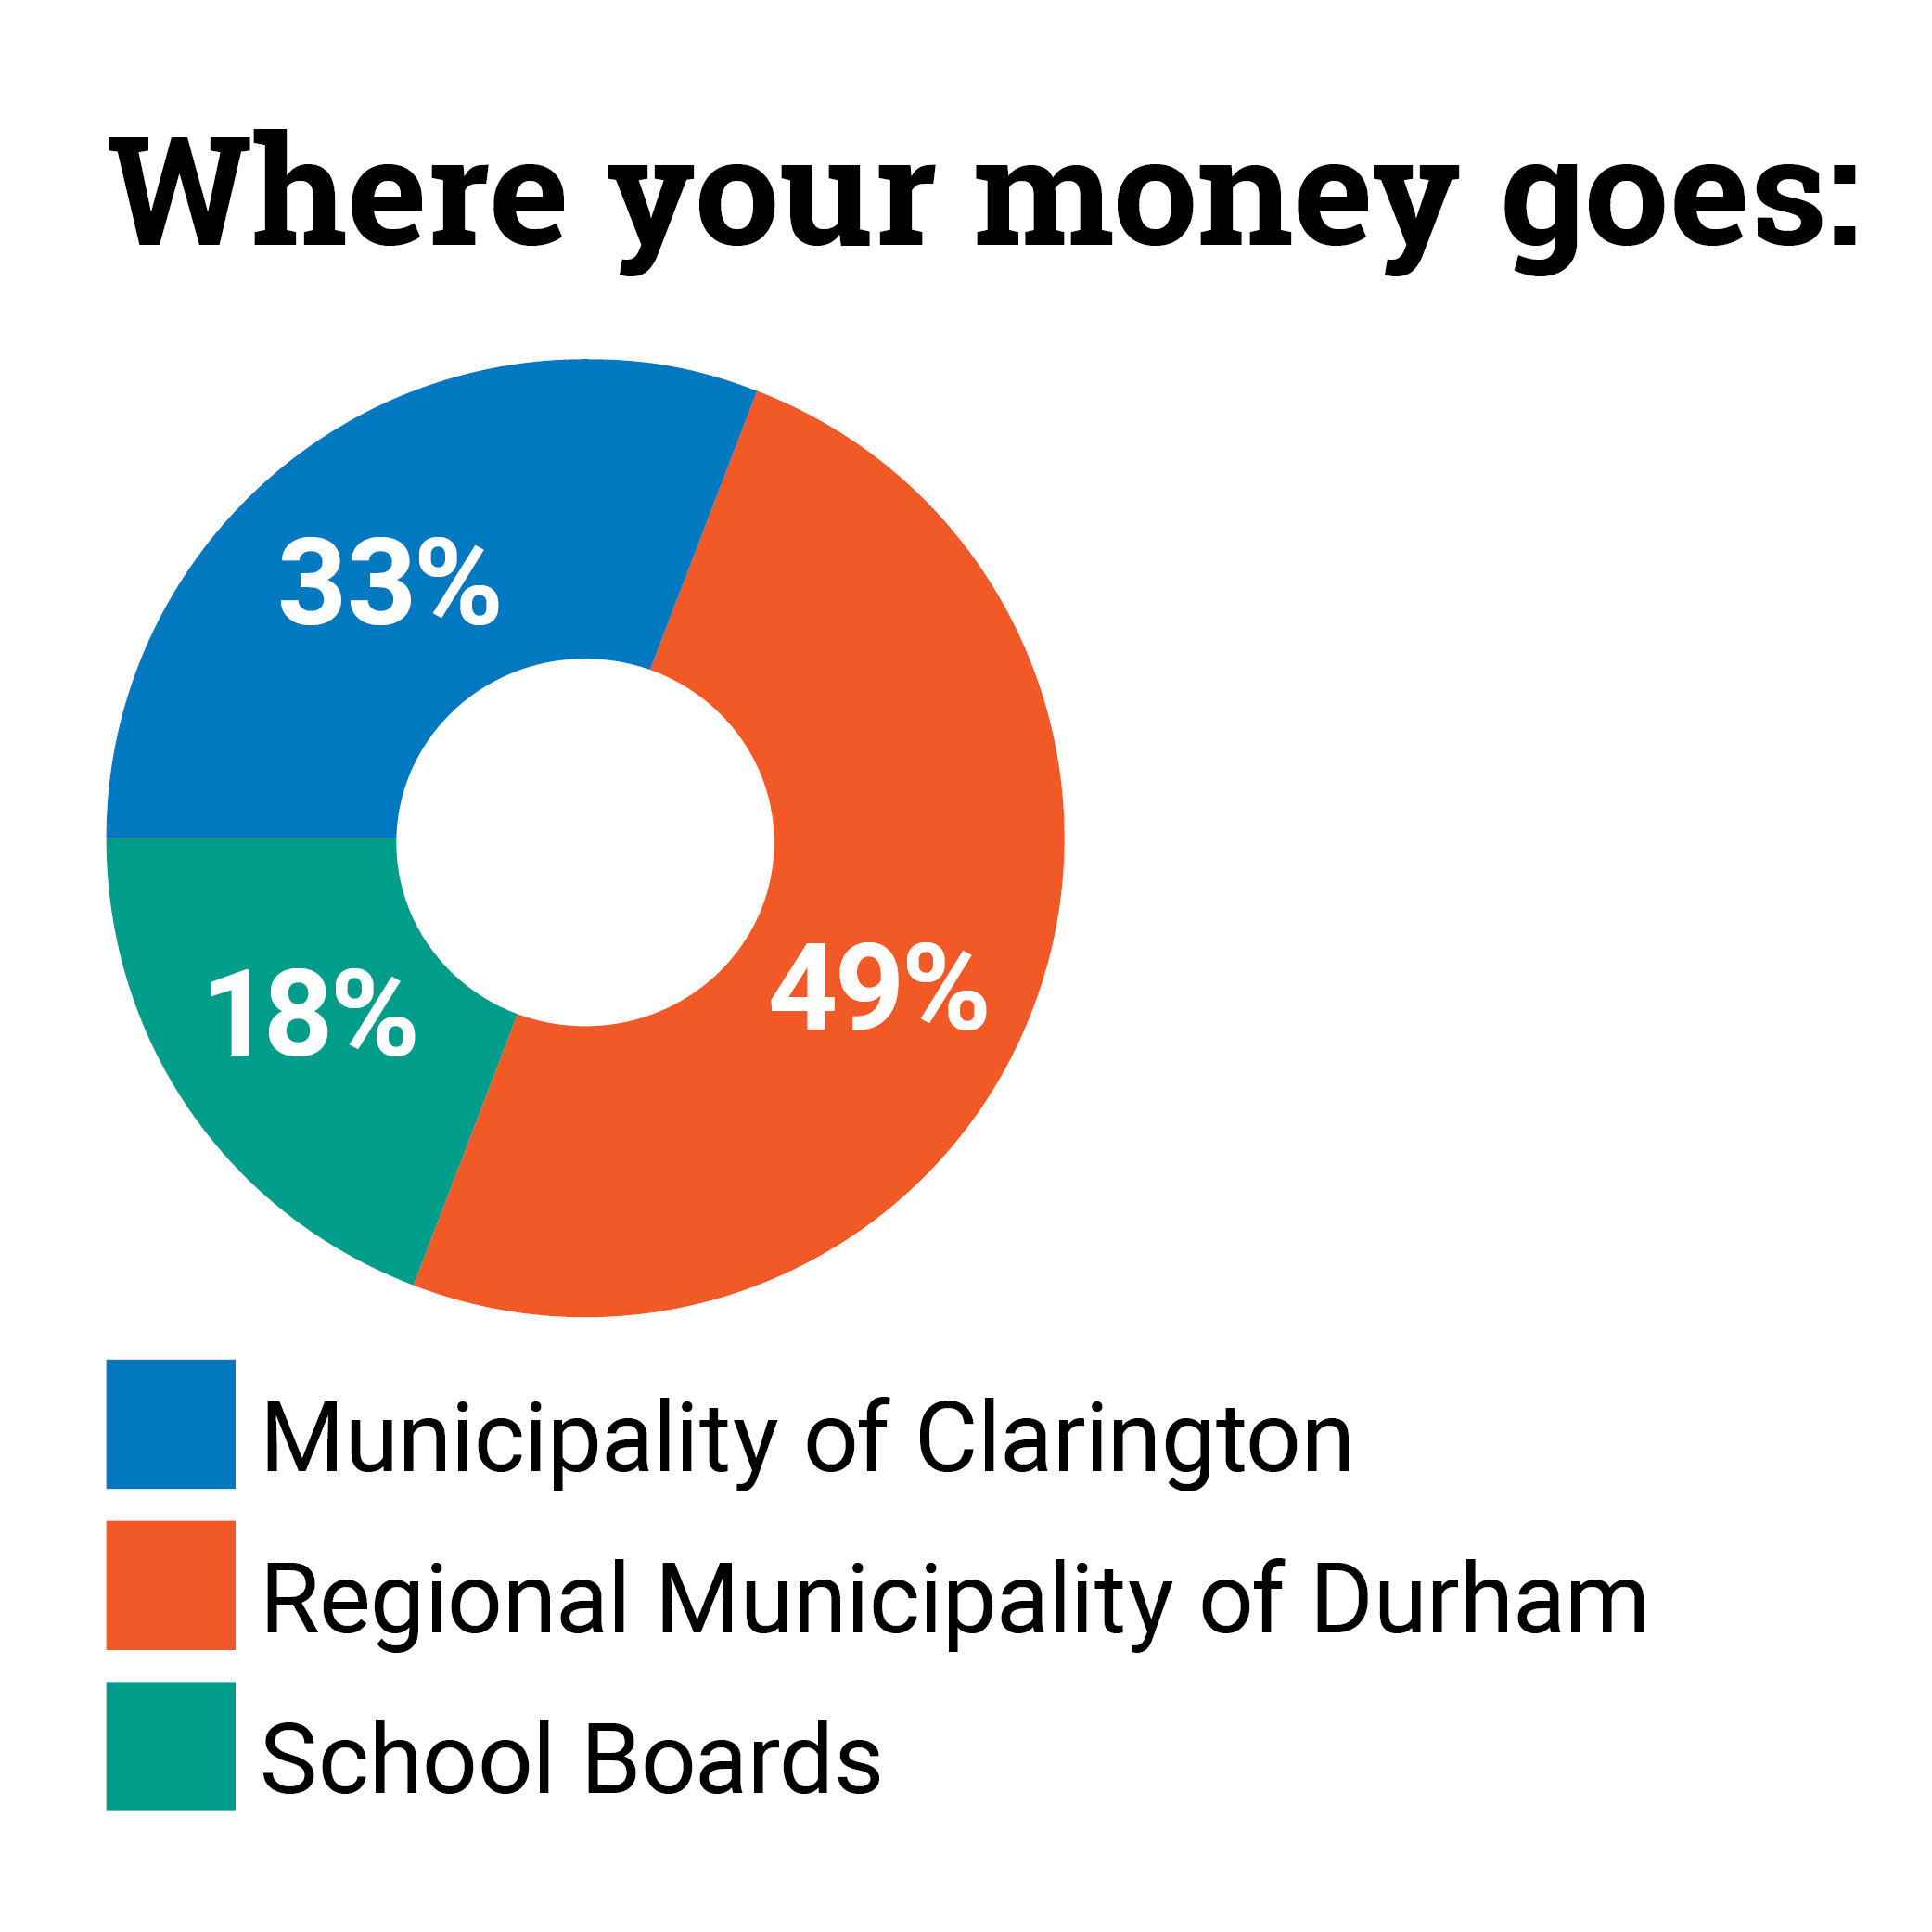 Graph showing where your money goes: 49% Region of Durham, 32% Clarington, 19% School Boards